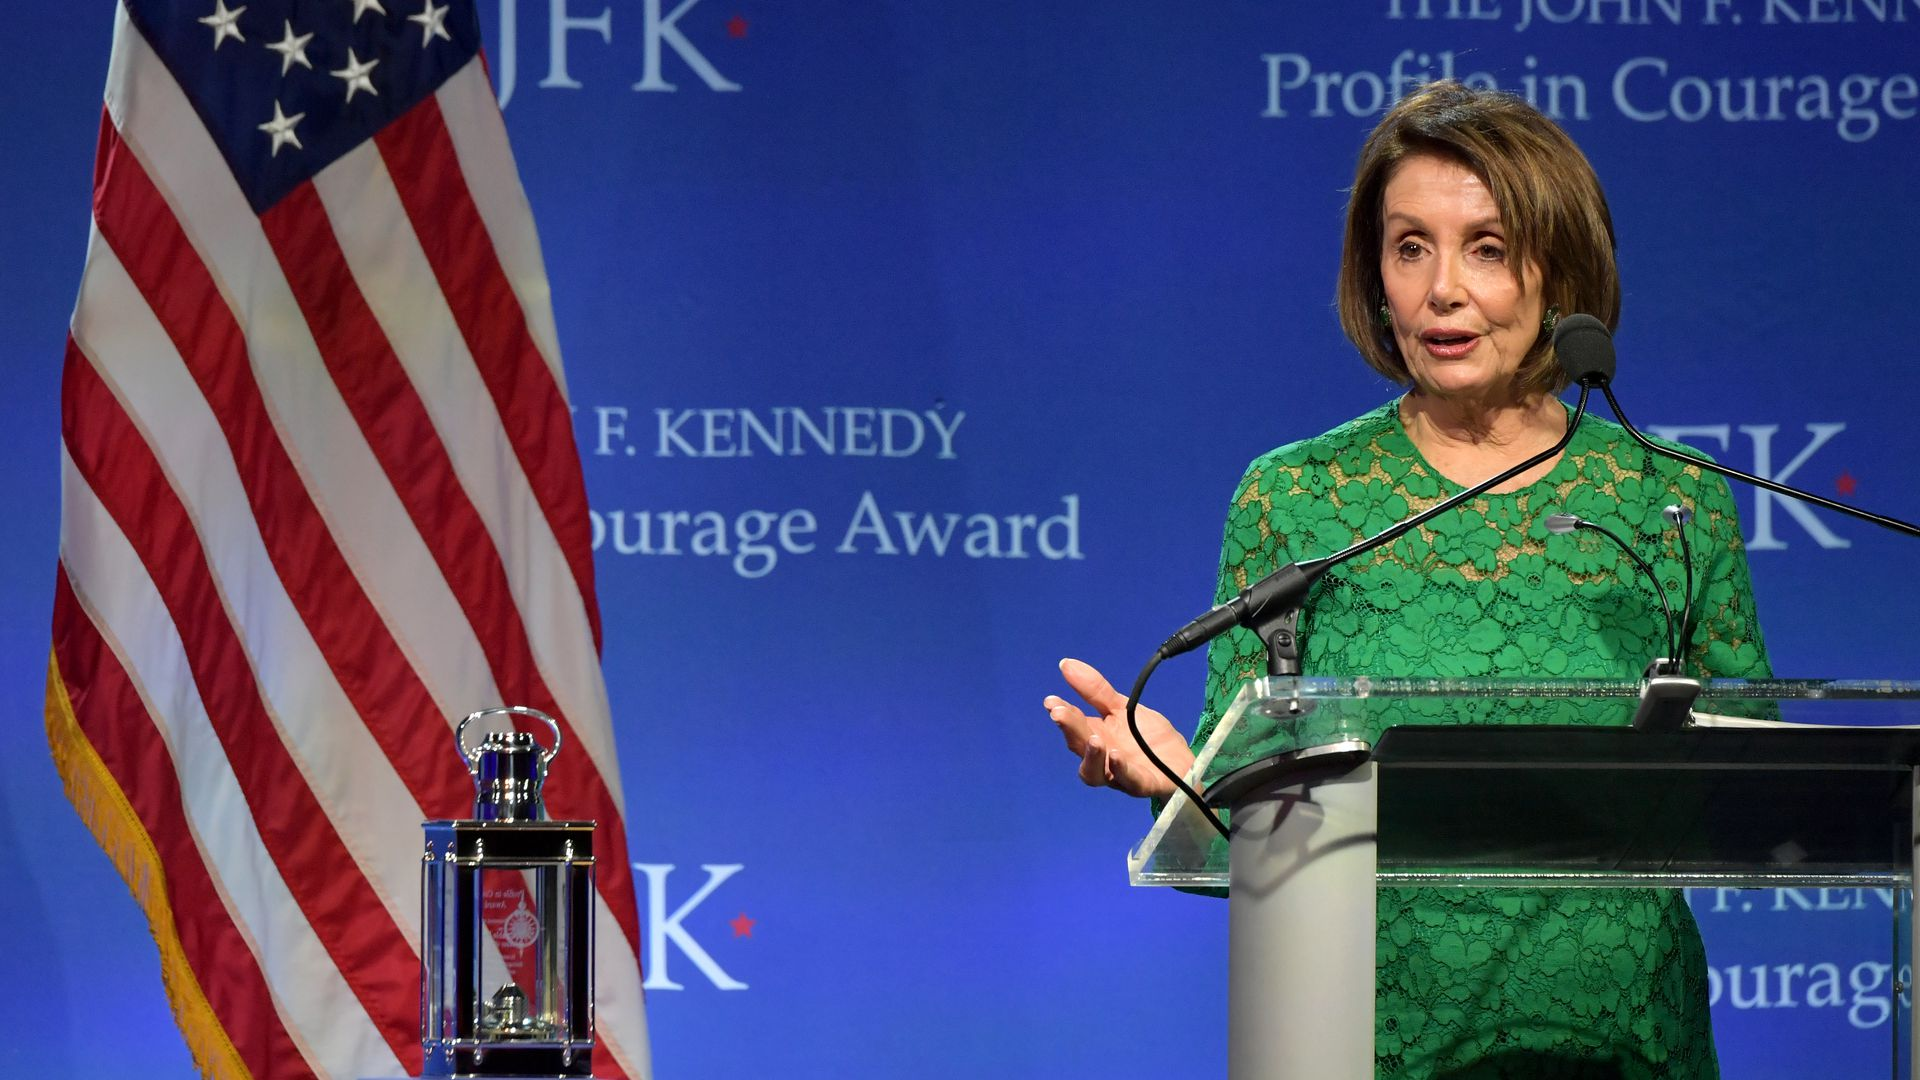 Speaker Nancy Pelosi speaks onstage after receiving the 2019 Profile in Courage Award at The John F. Kennedy Presidential Library And Museum on May 19, 2019 in Boston, Massachusetts.